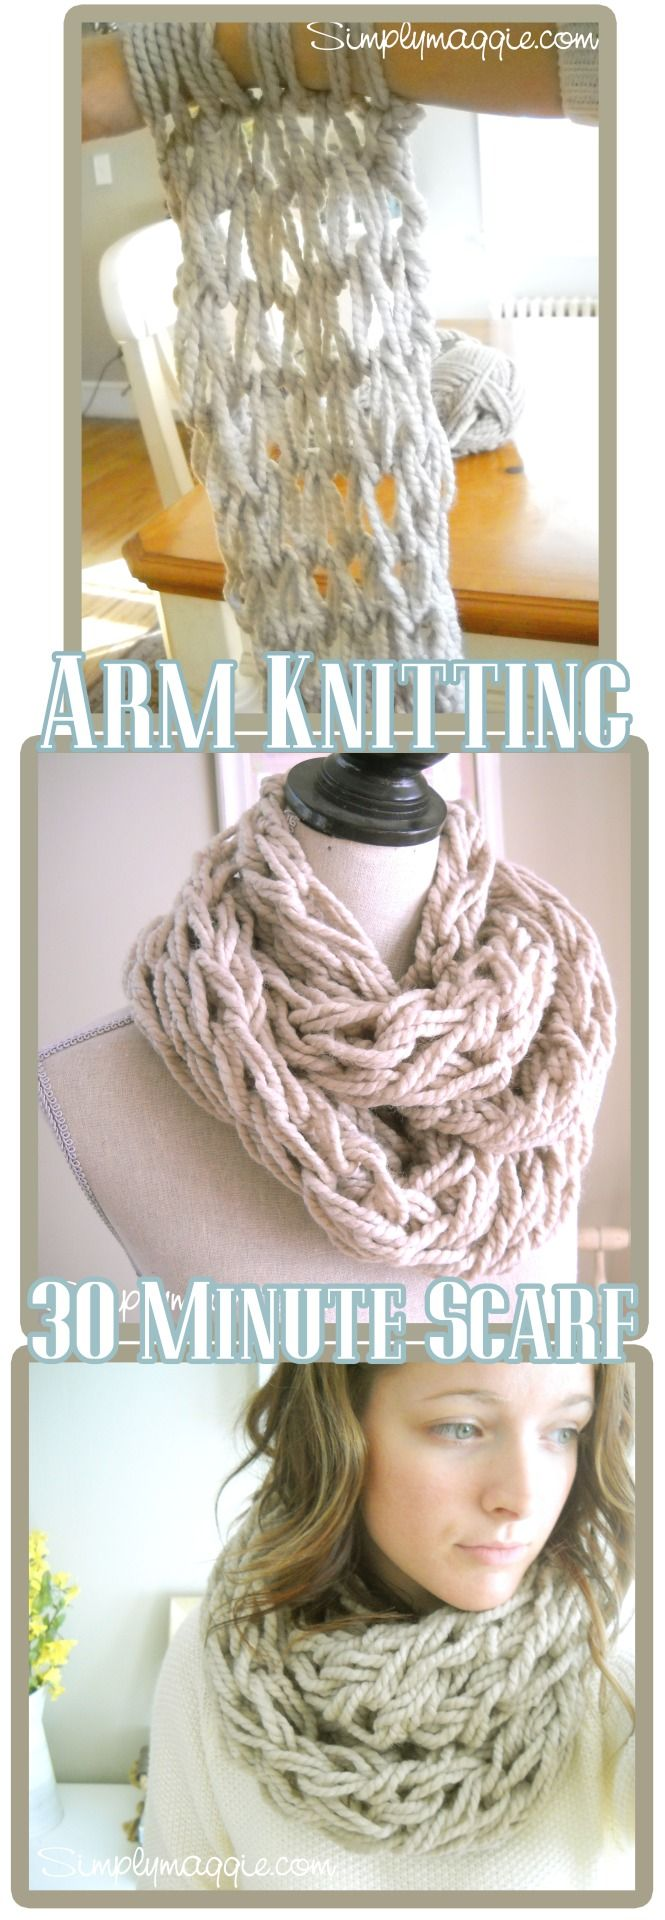 DIY Arm Knit Chunky Scarf Tutorial from Simply Maggie here. I have never done arm knitting but she has a really good YouTube video. Here are two more of her scarves done in Bernat Roving Yarn here.